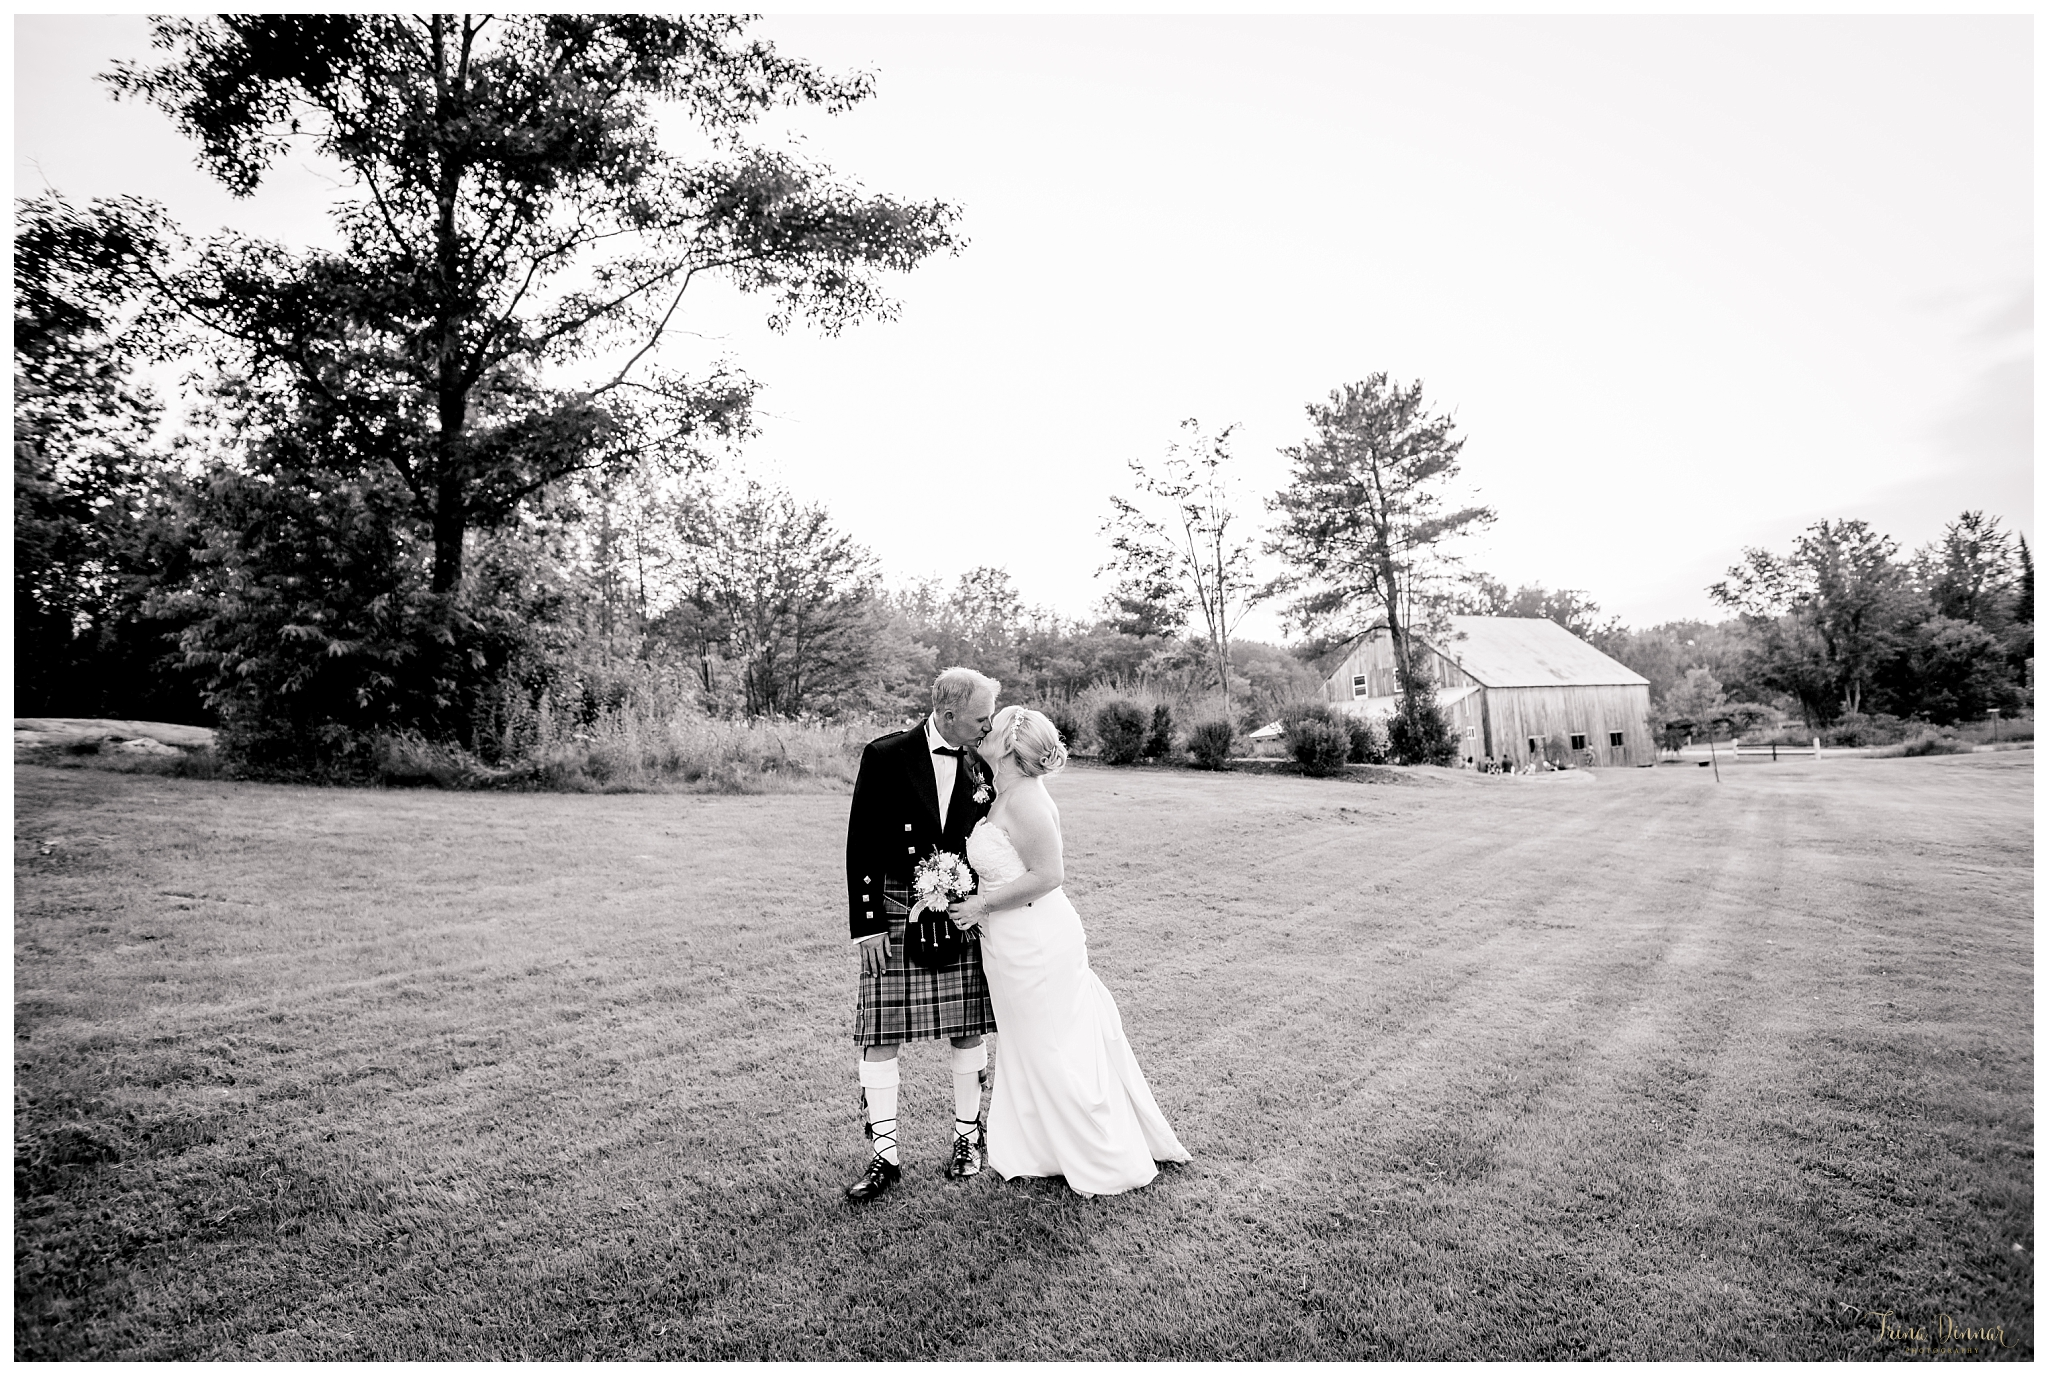 Angela and Billy's Maine Wedding at The Hitching Post